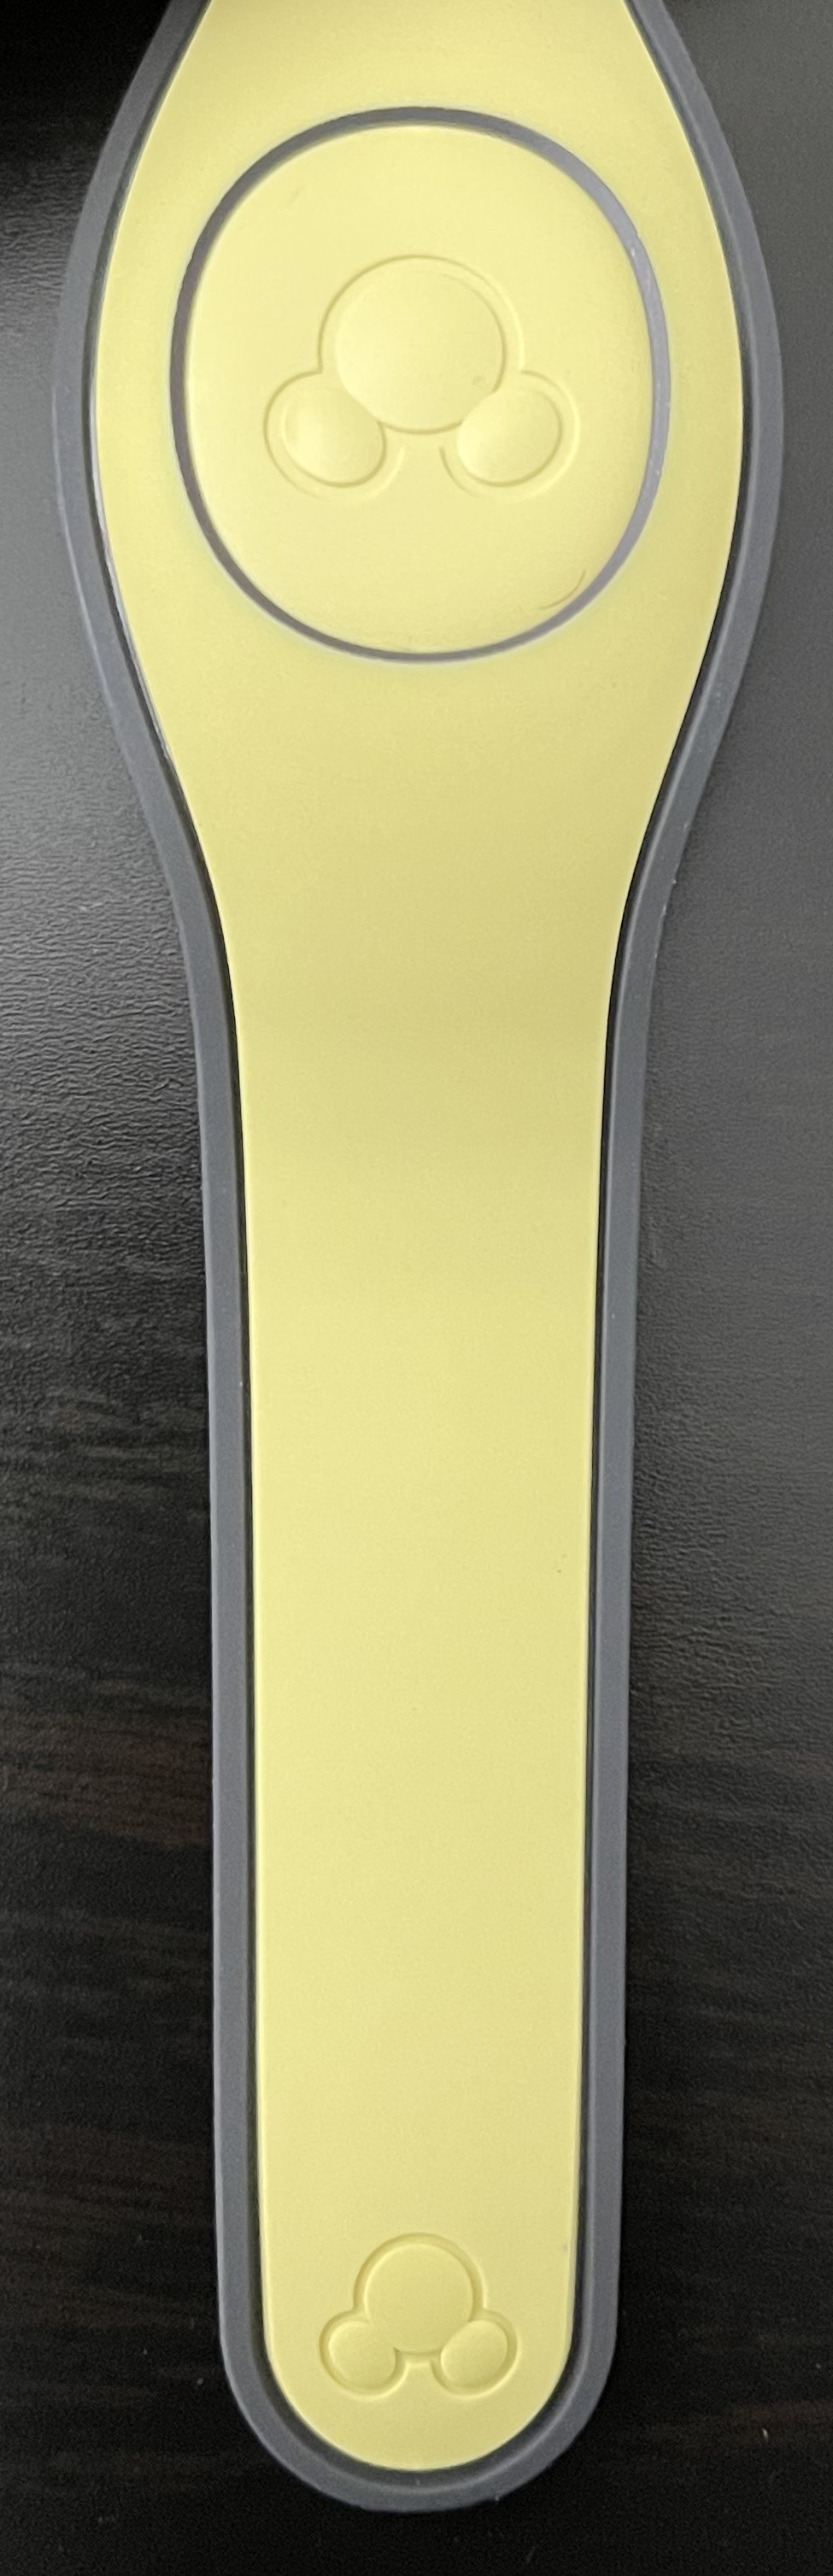 Corn Field Yellow solid base color MagicBand has been released today